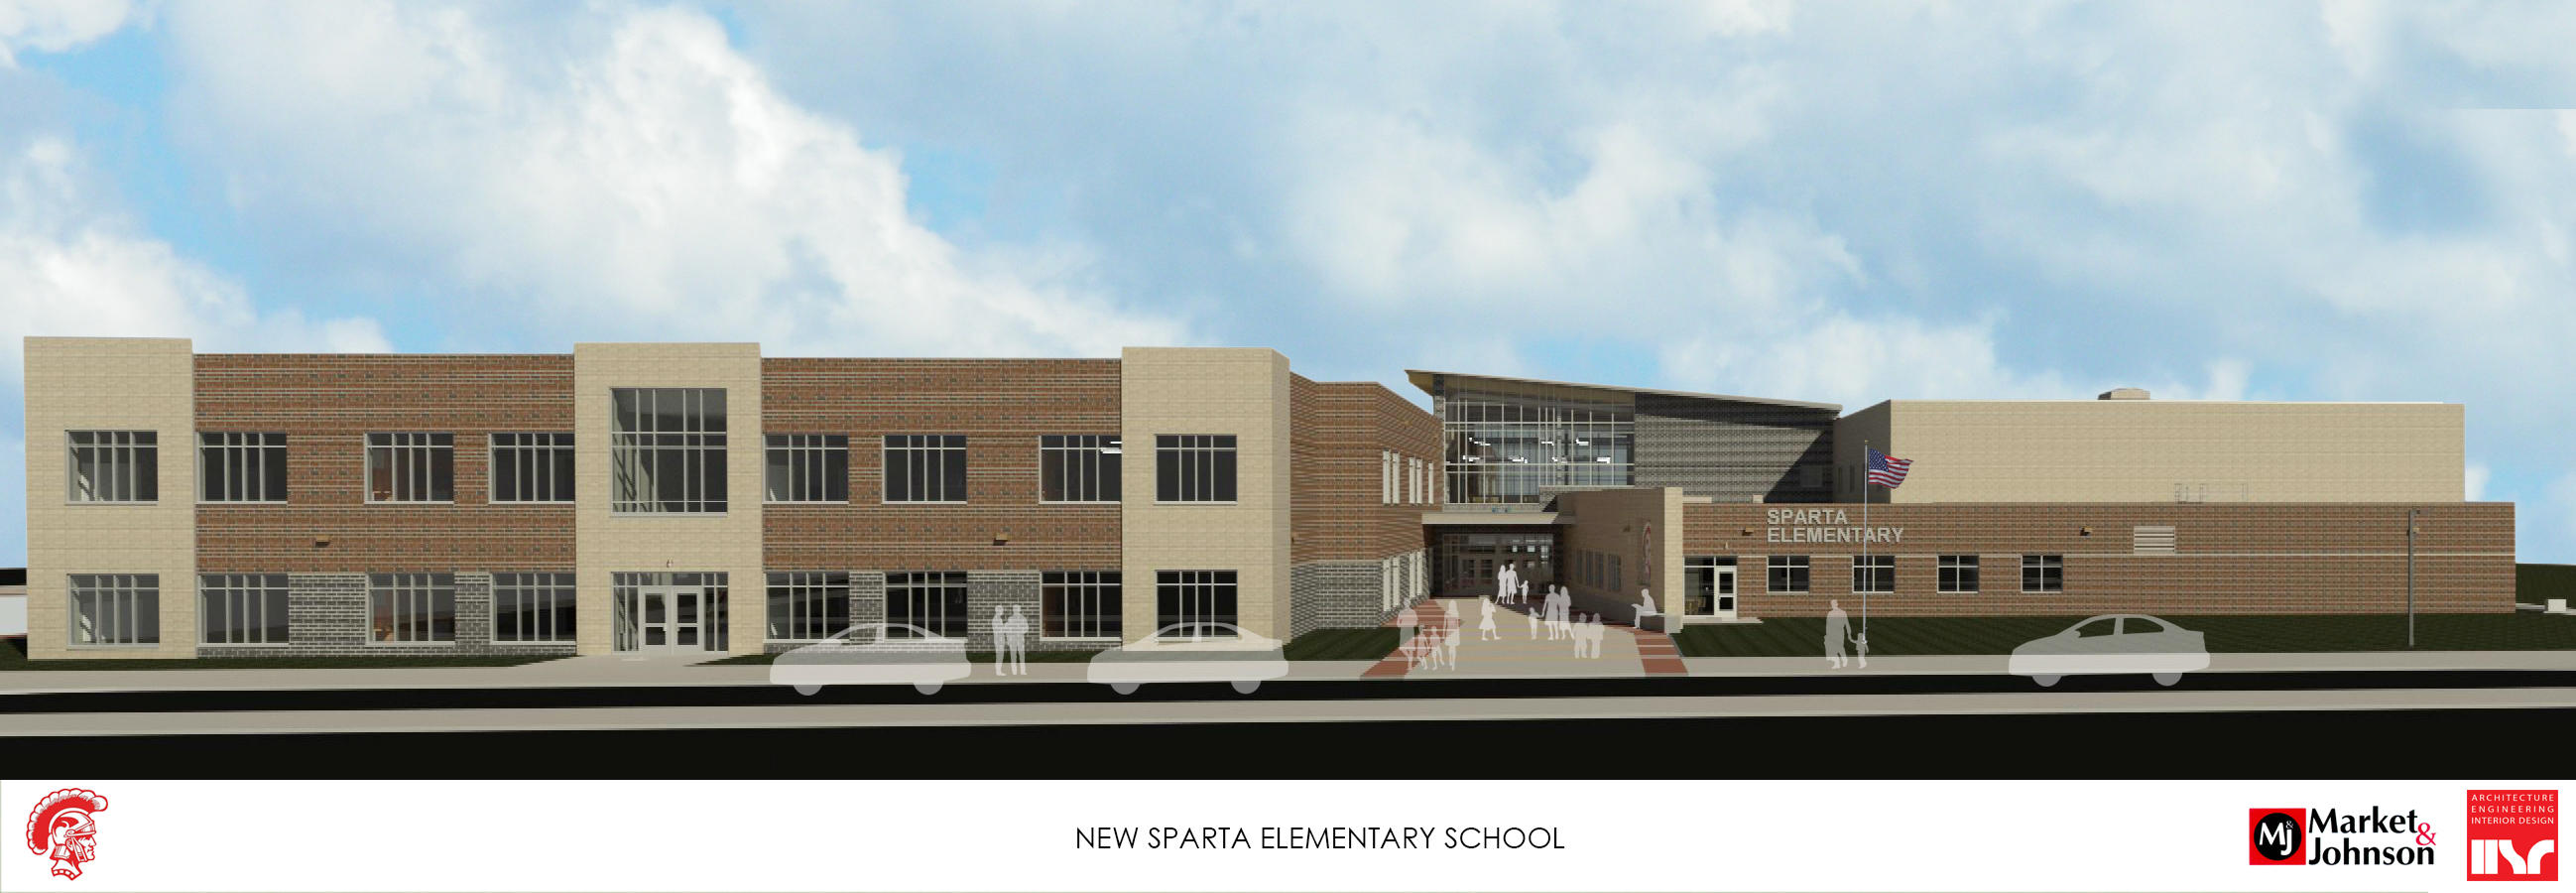 Rendering of Final Overall view